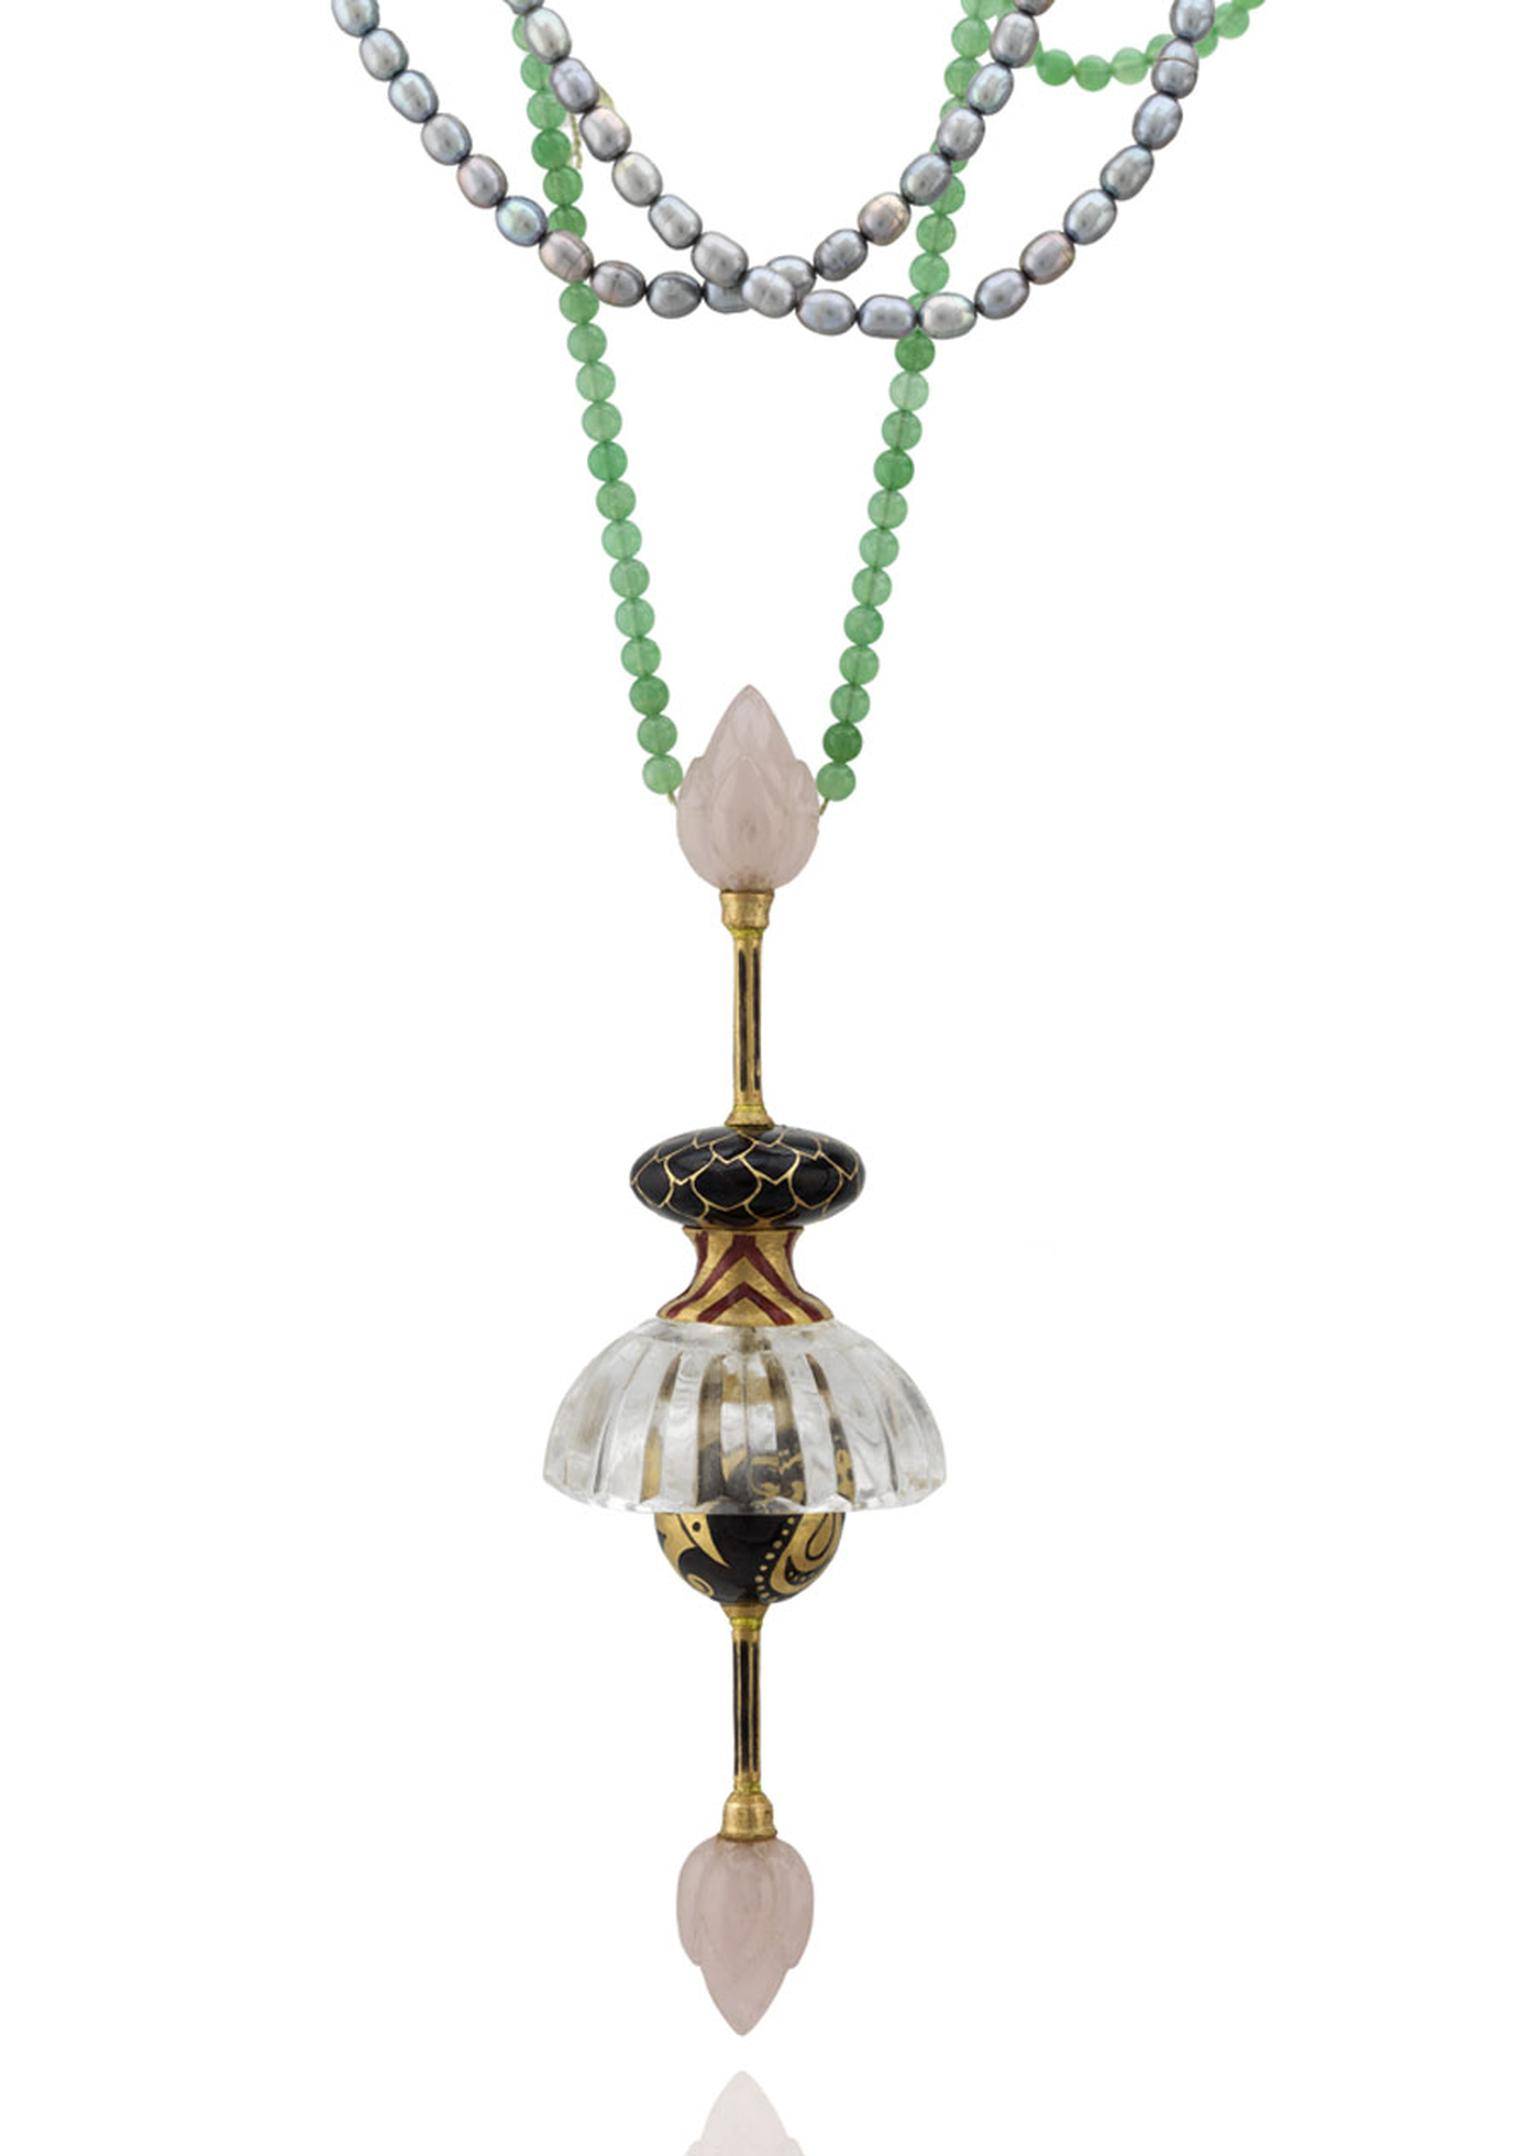 Alice Cicolini Jodhpur Shinkara Pendant made with vitreous enamel, hand-carved Brazilian rose quartz and crystal, freshwater pearls, sapphire, fine Australian chrysoprase and gold beads.